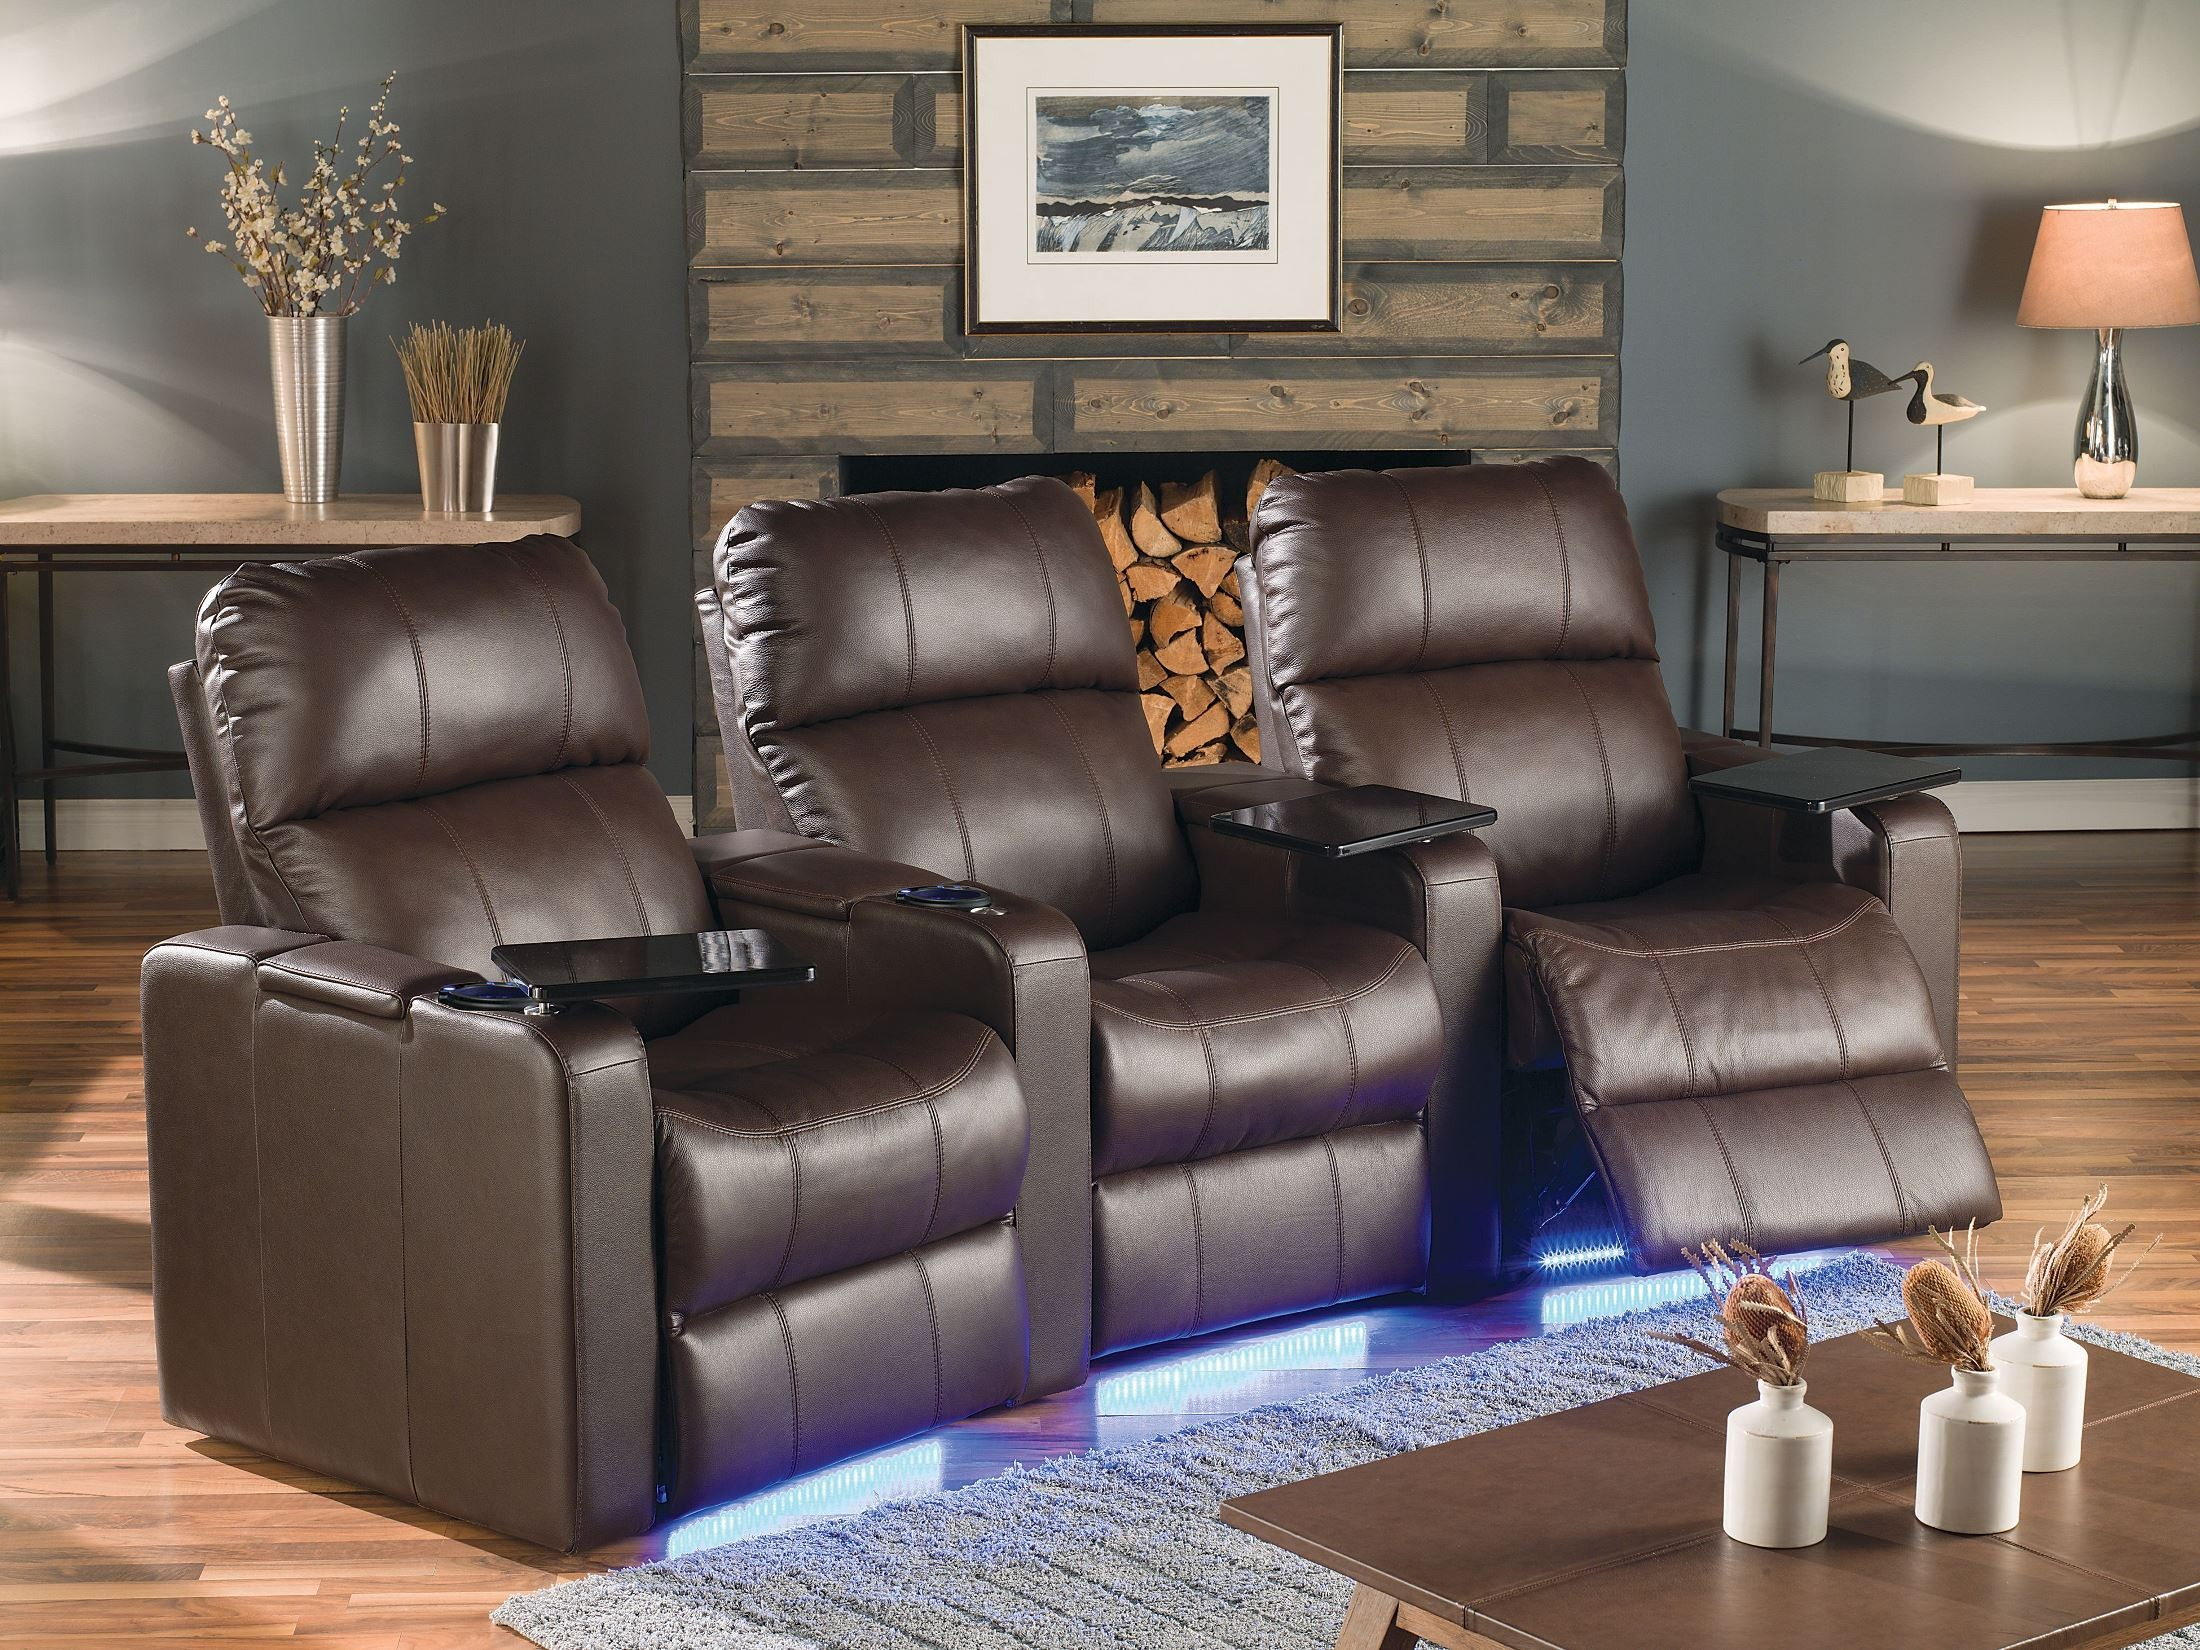 Elite Bonded Leather Home Theatre Seating, PSR-41952 ...